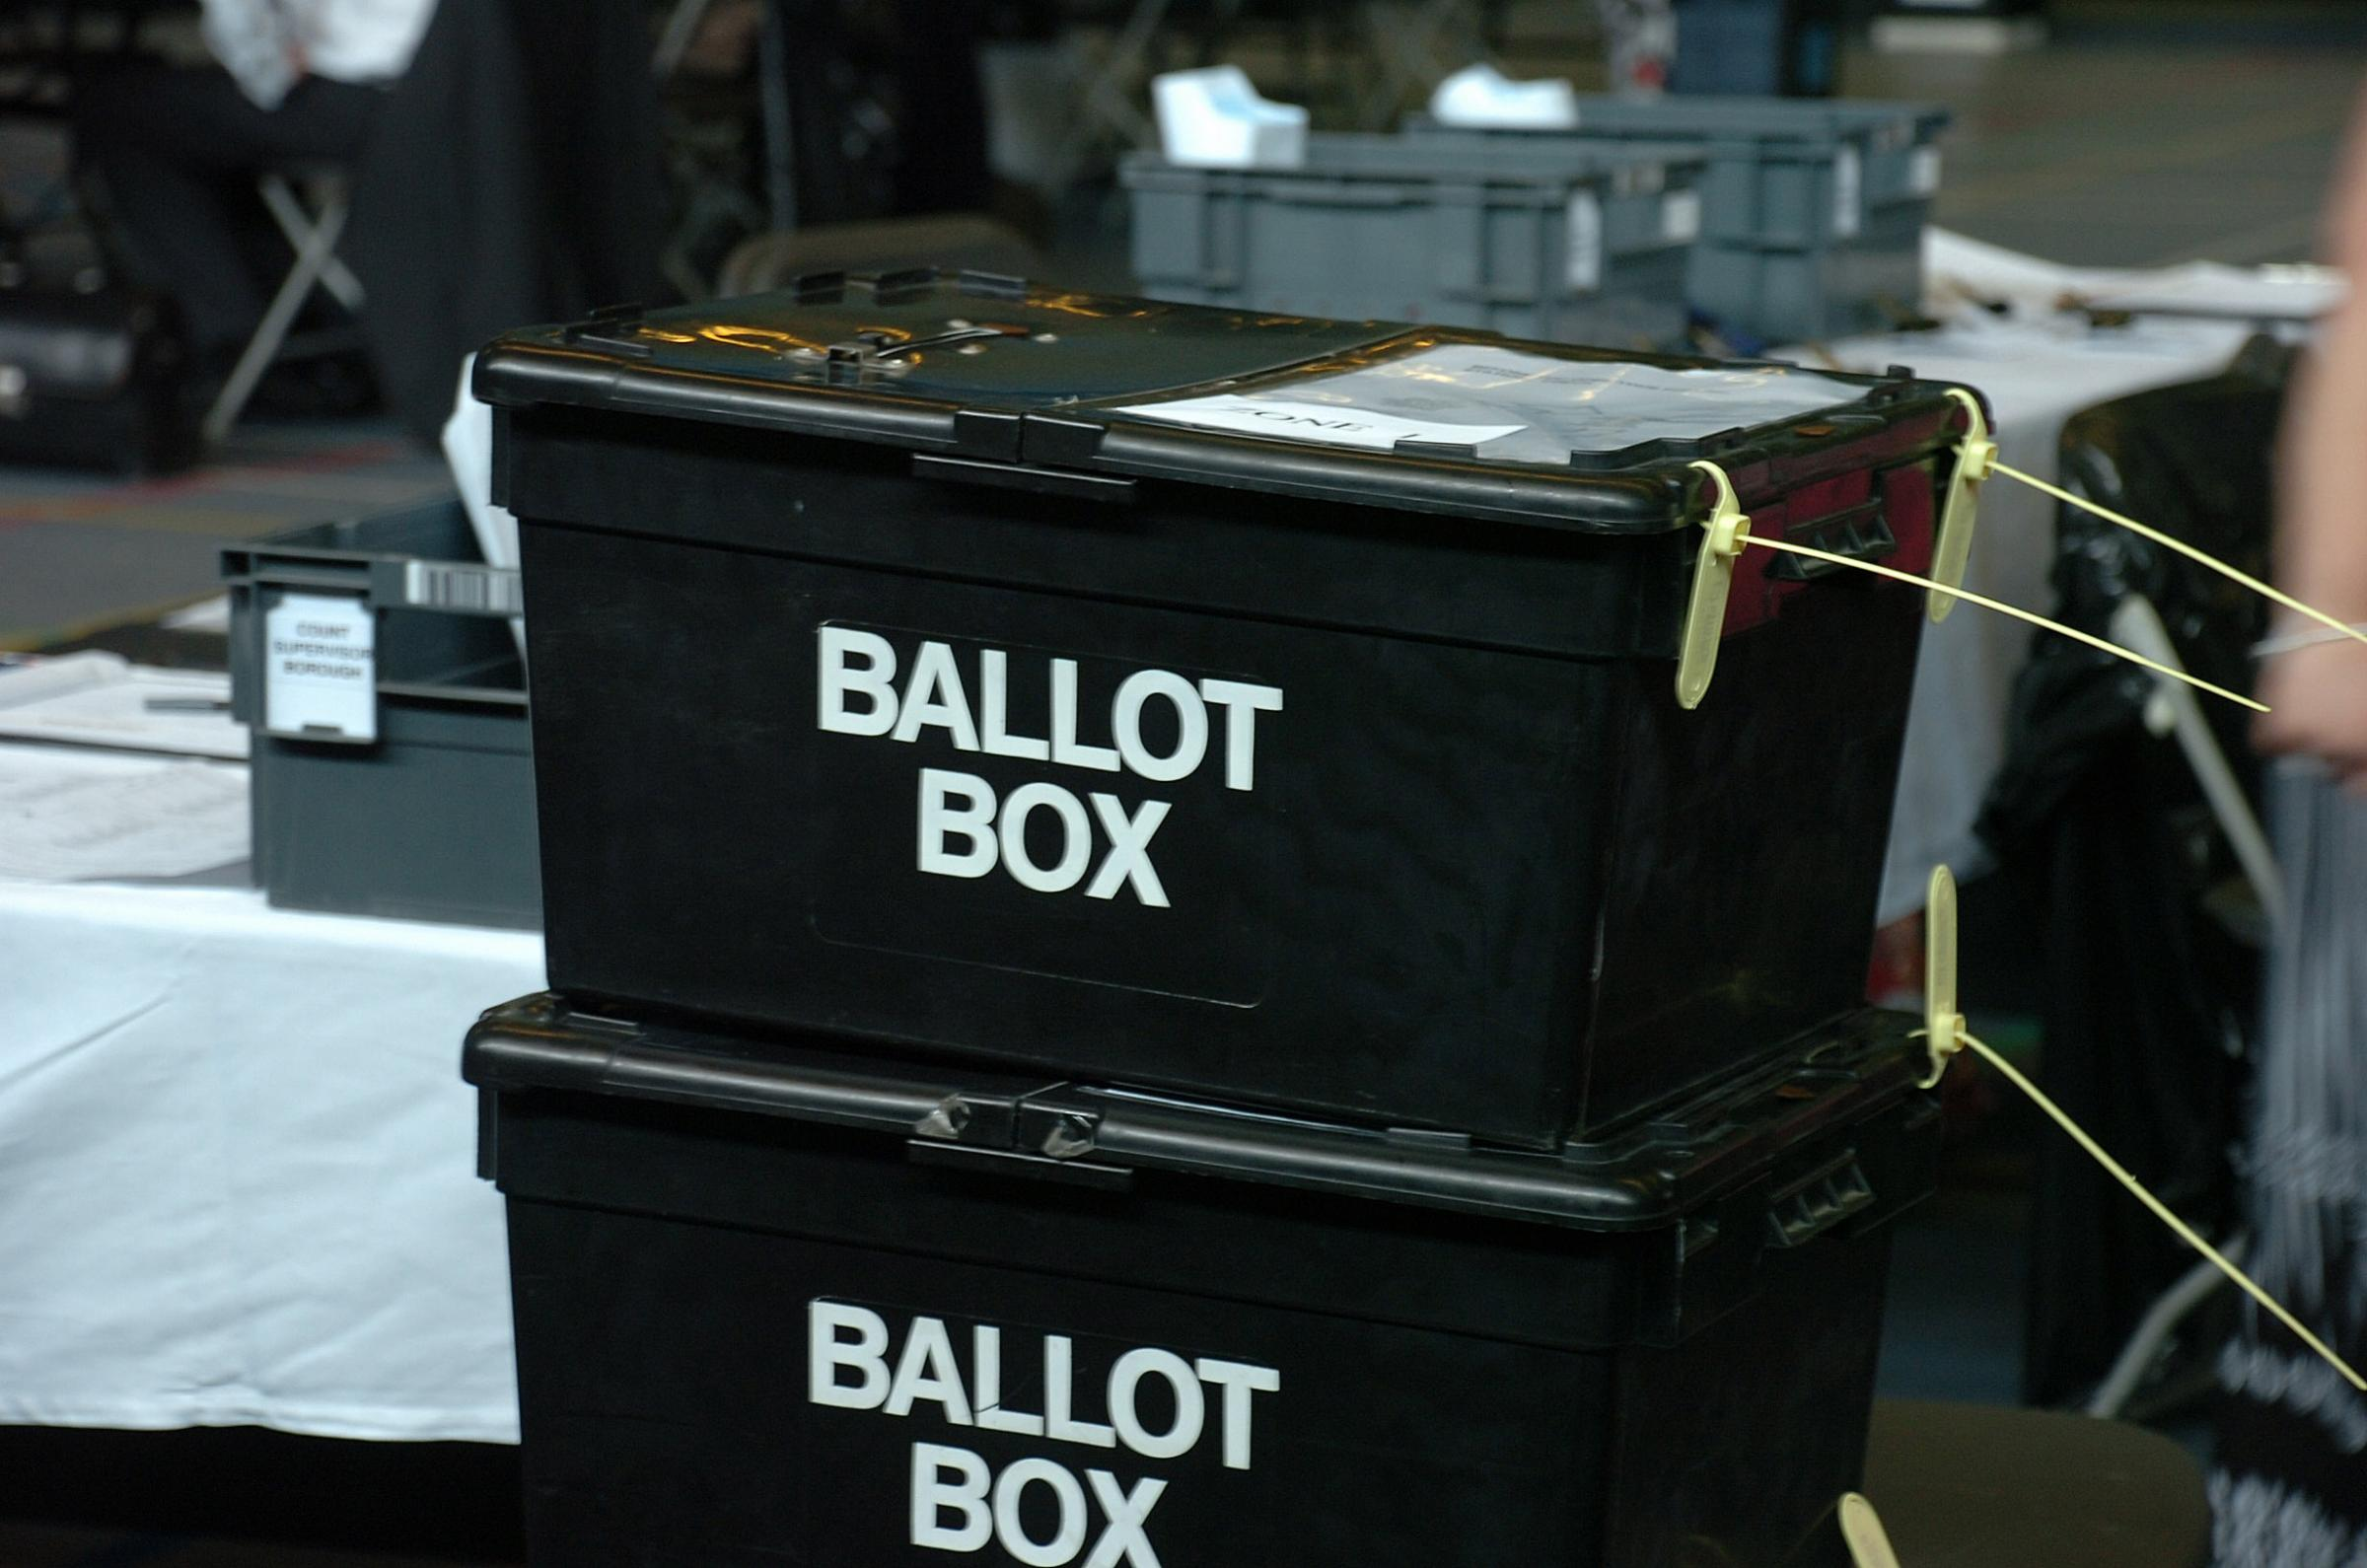 Have you signed up to new electoral roll?